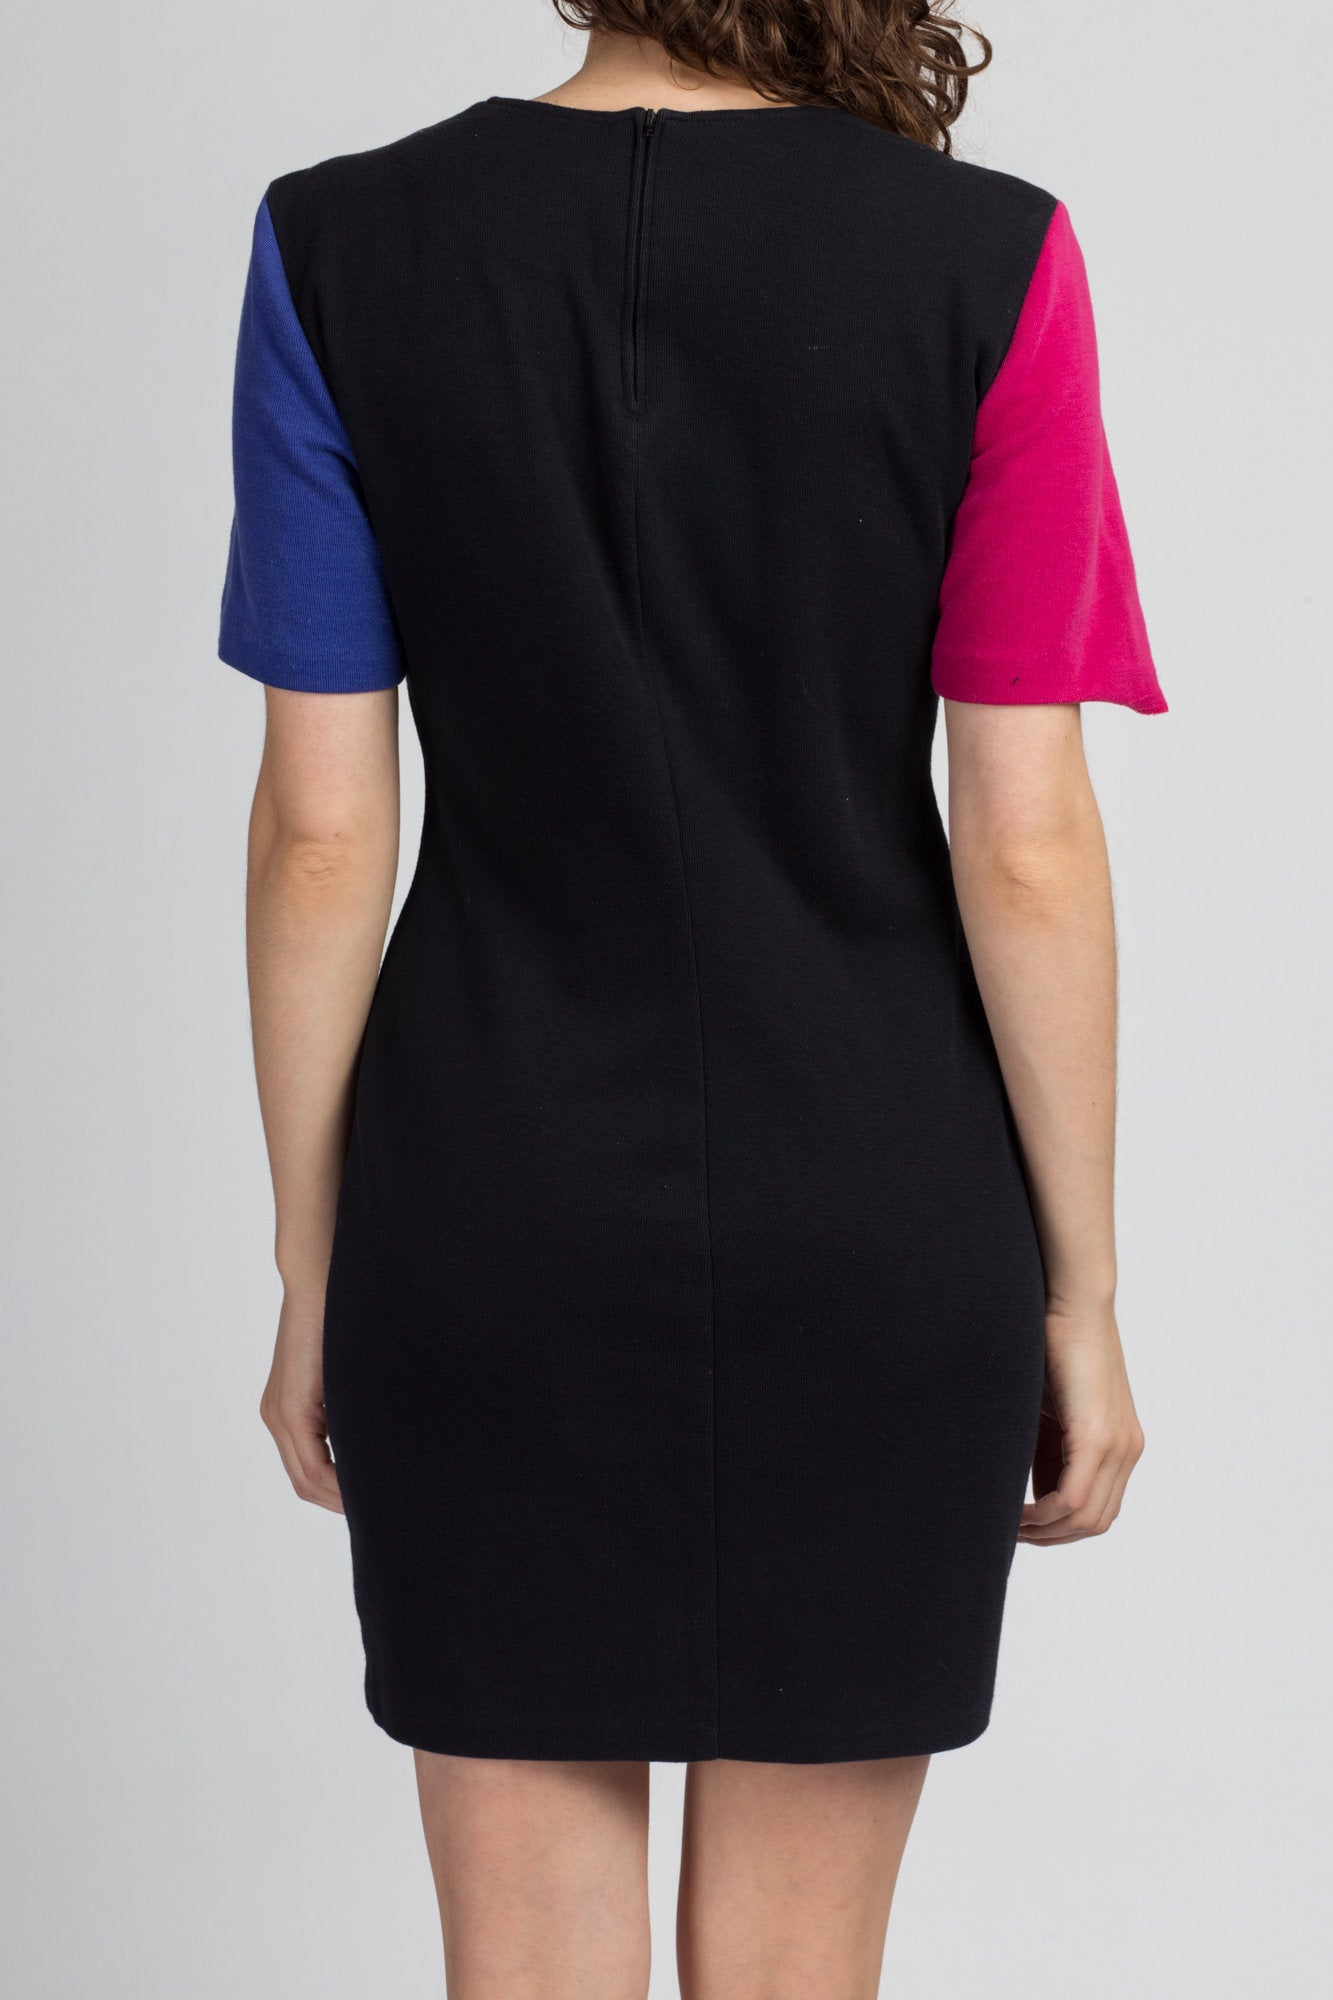 90s Color Block Bodycon Dress - Large